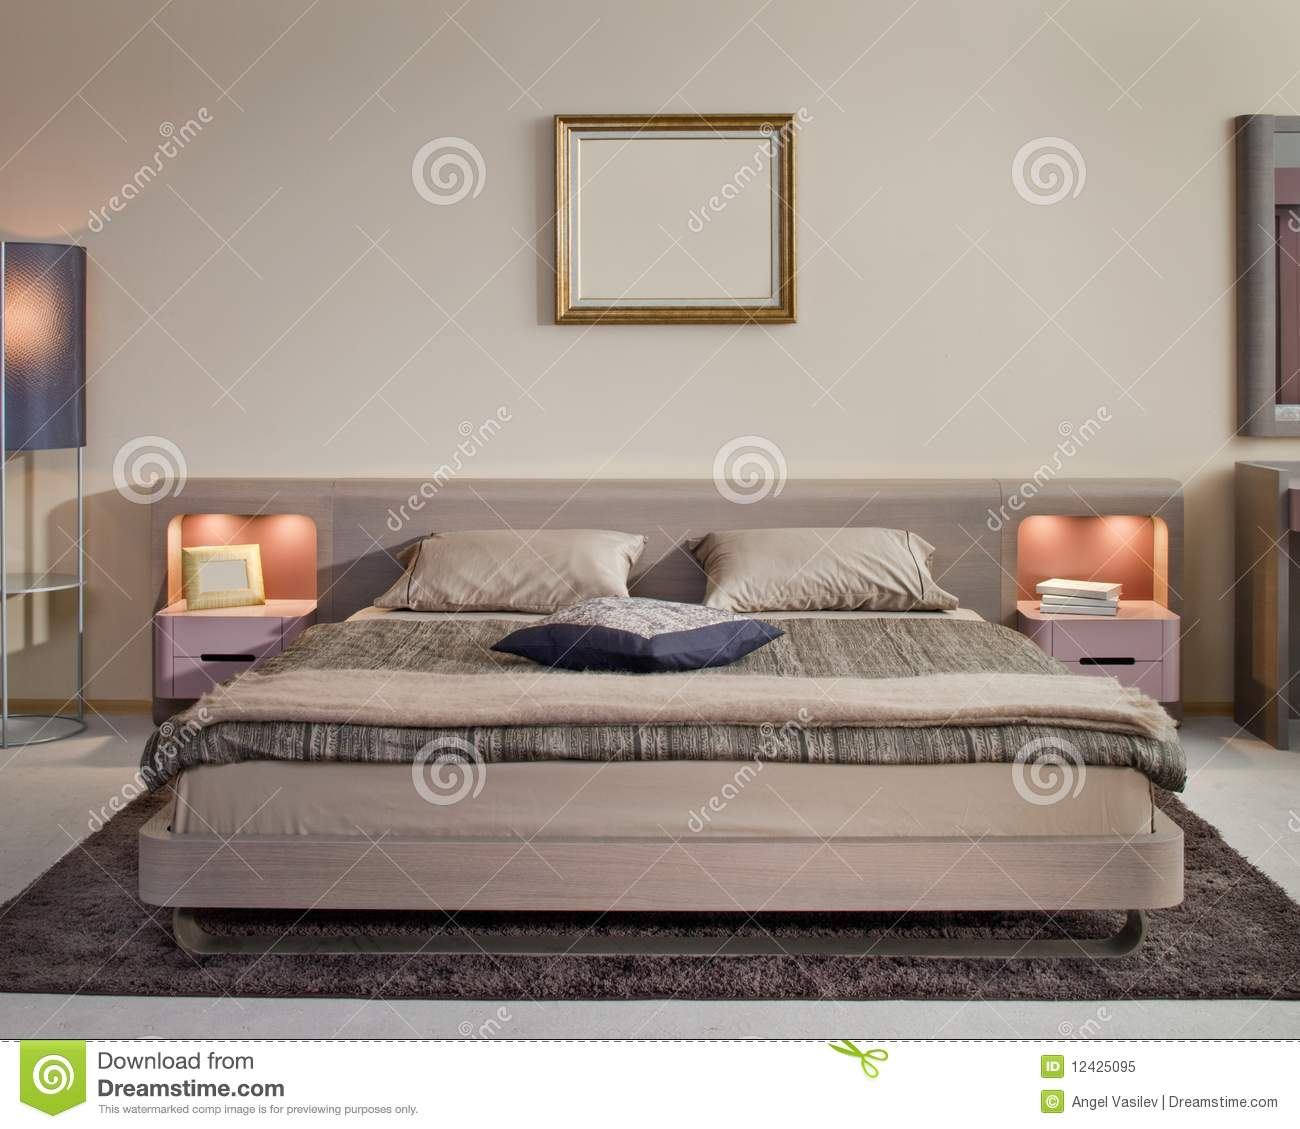 Royalty Free Stock Photo Bedroom Design Elegant Home Hotel Interior